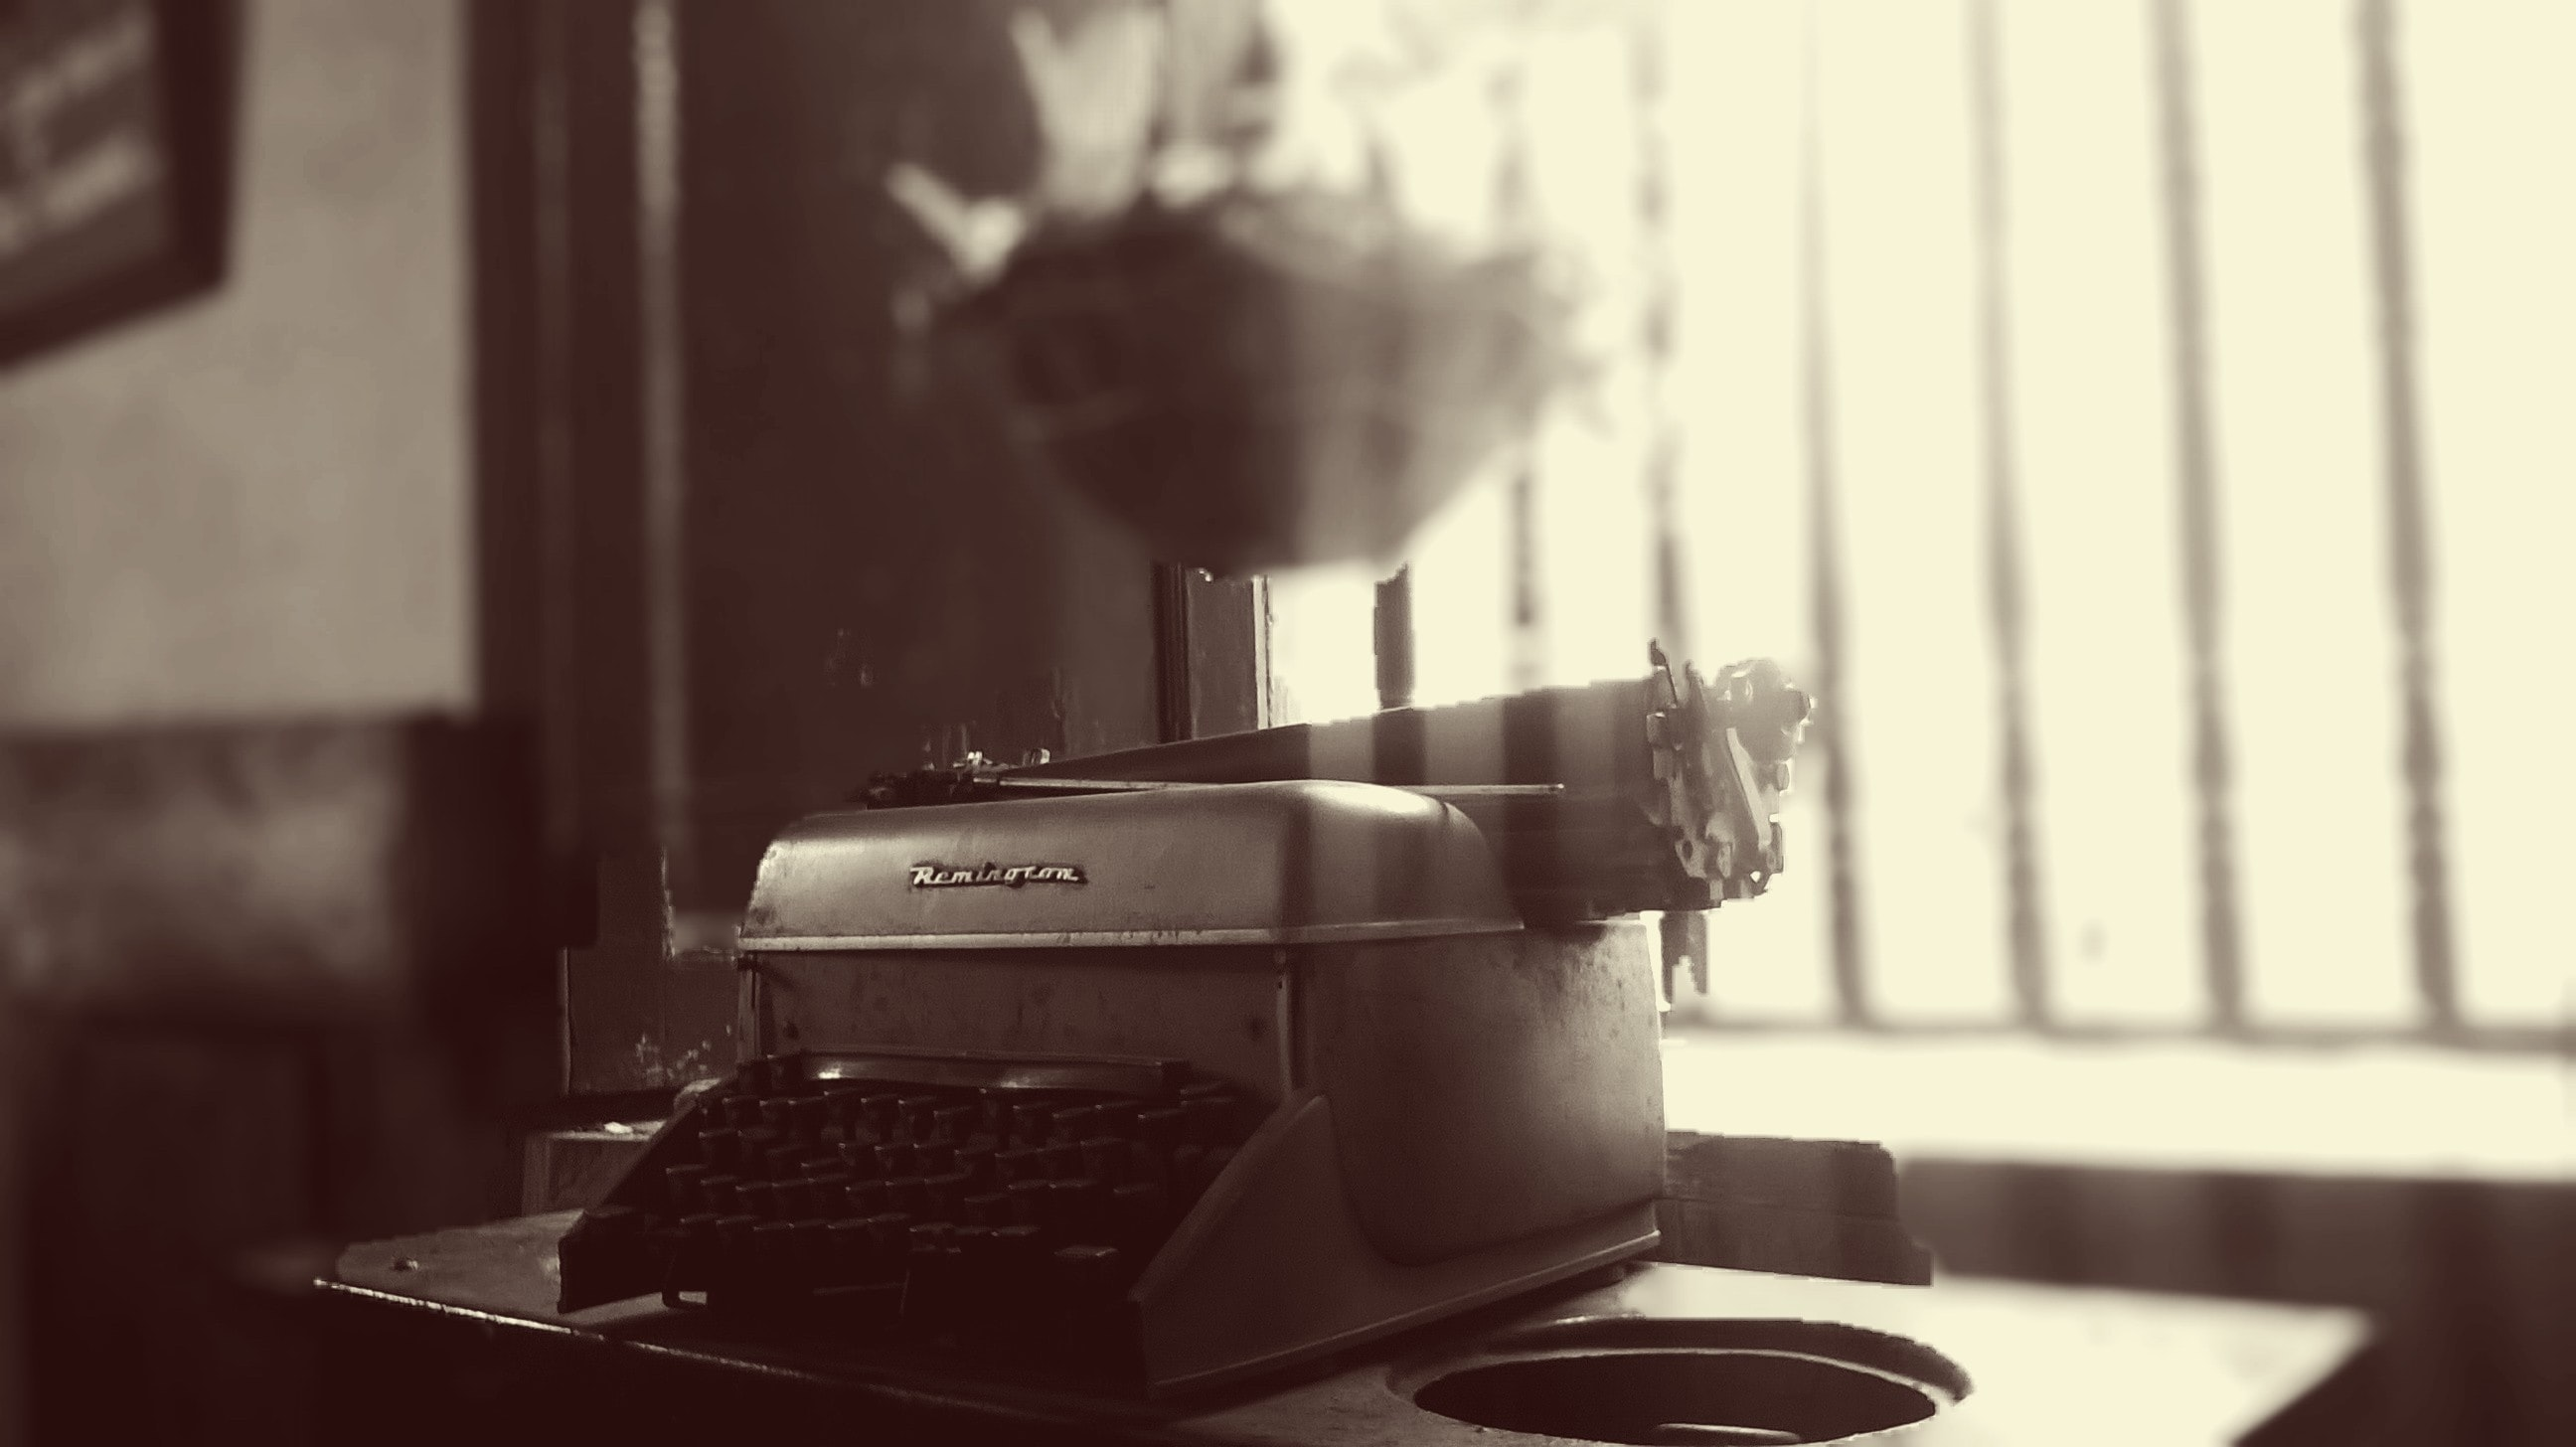 An old antique typewriter sits near a window with soft light coming through.